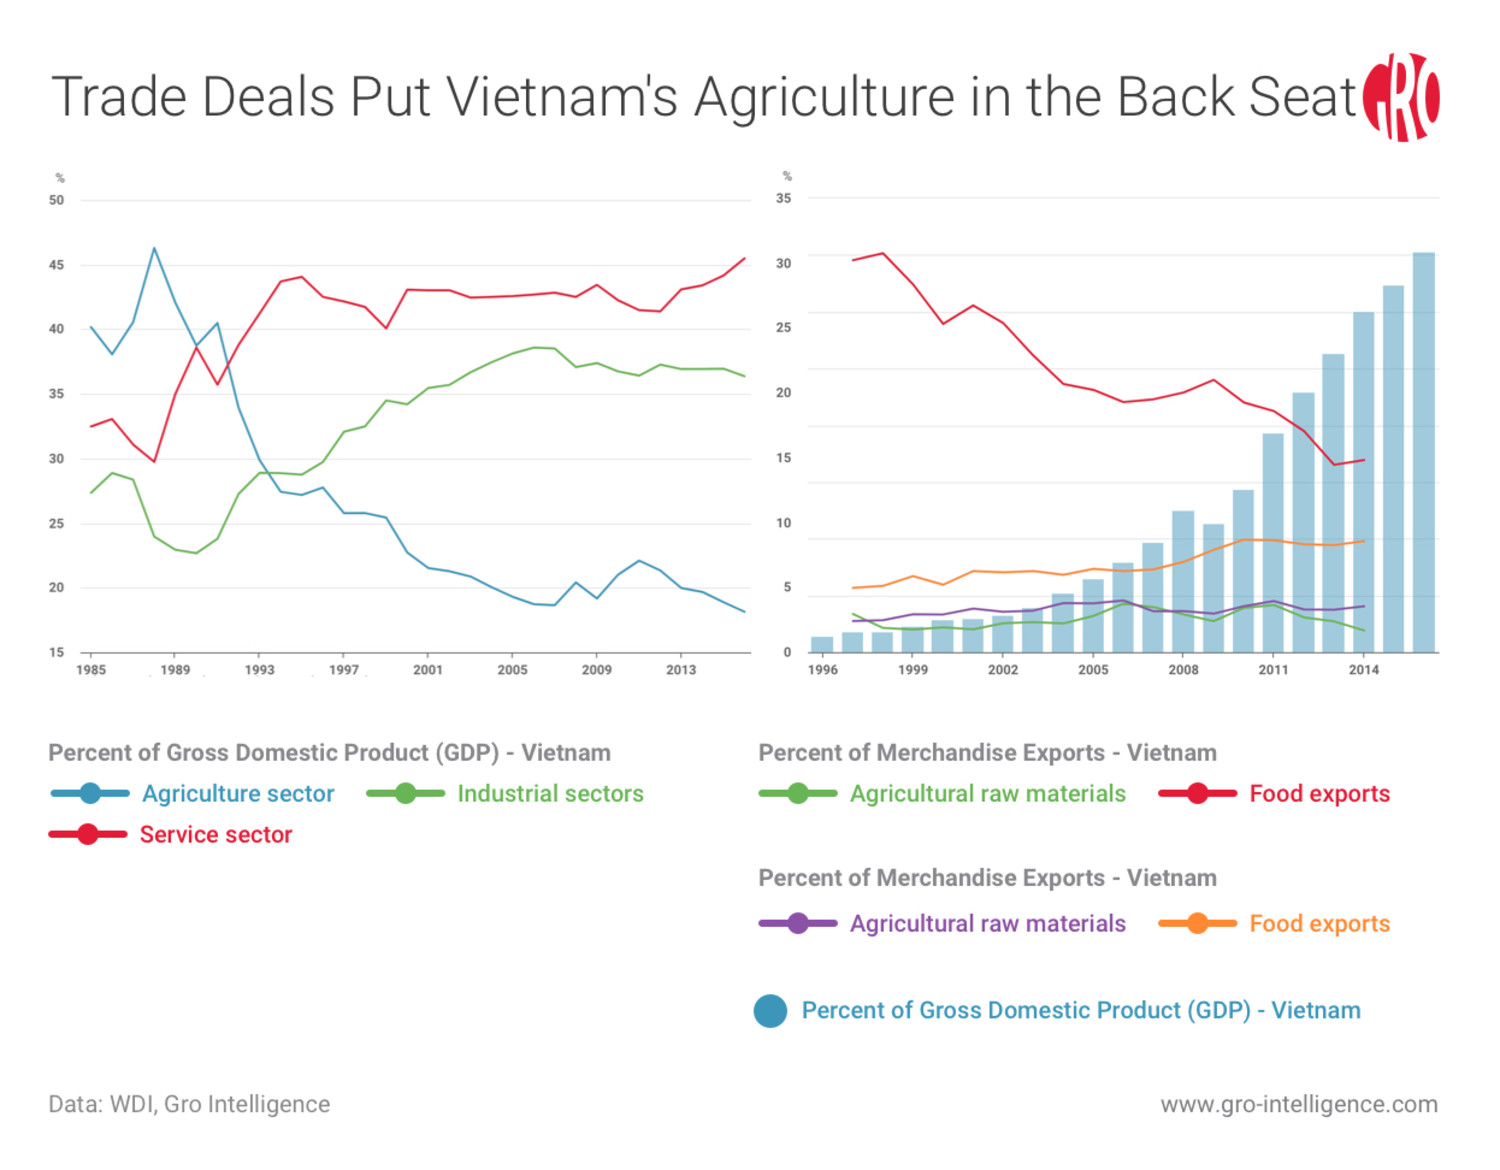 Trade Deals and Vietnam Agriculture